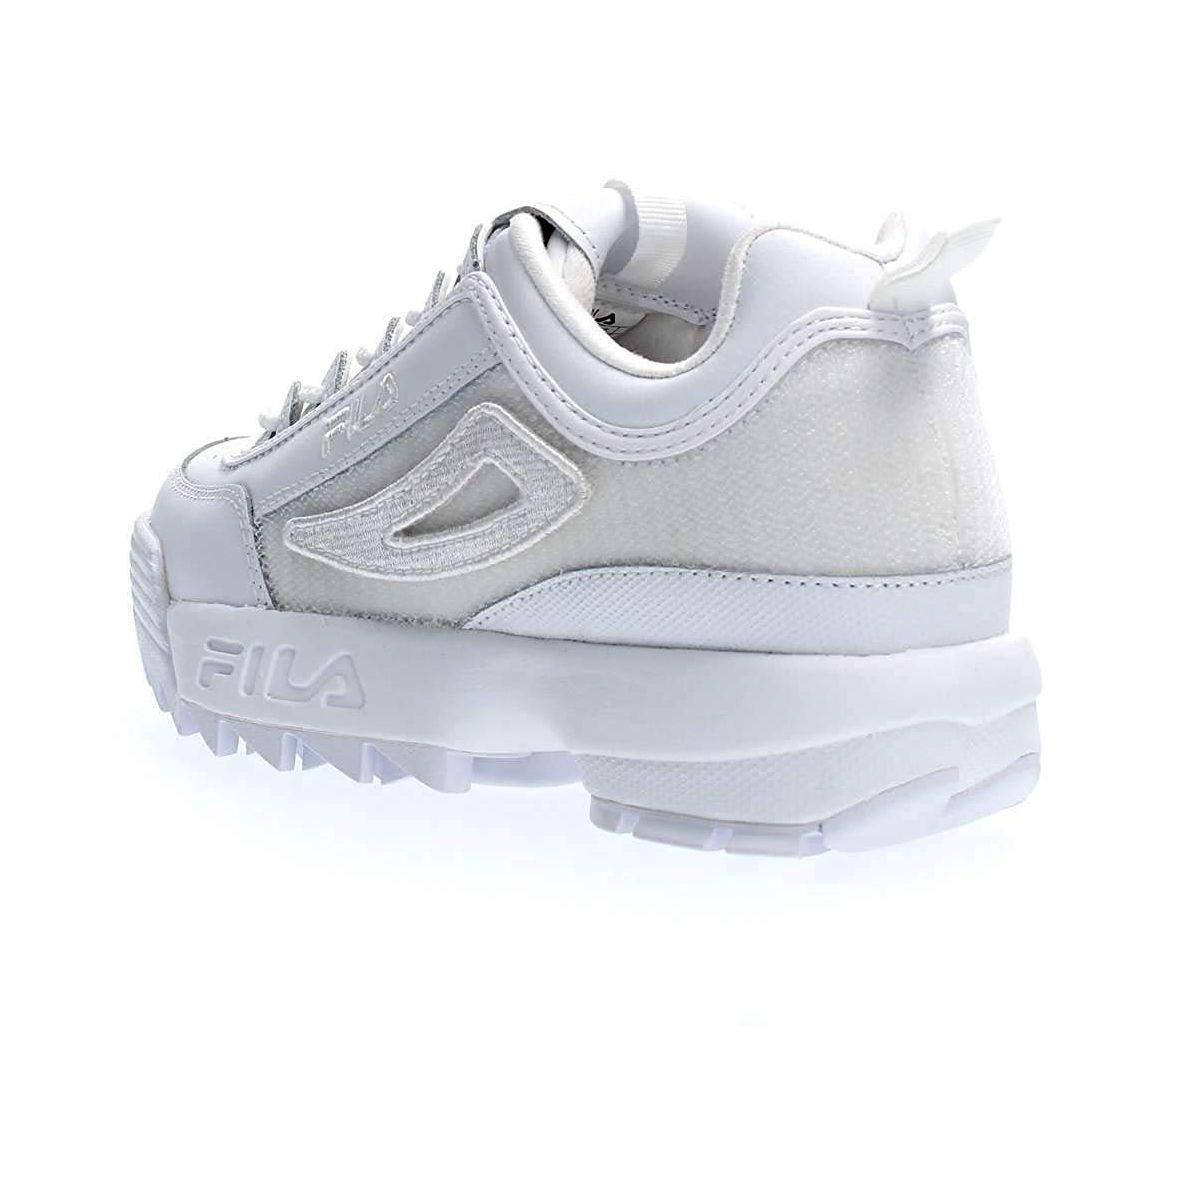 Fila femme disruptor 2 patches blanc1179601_5